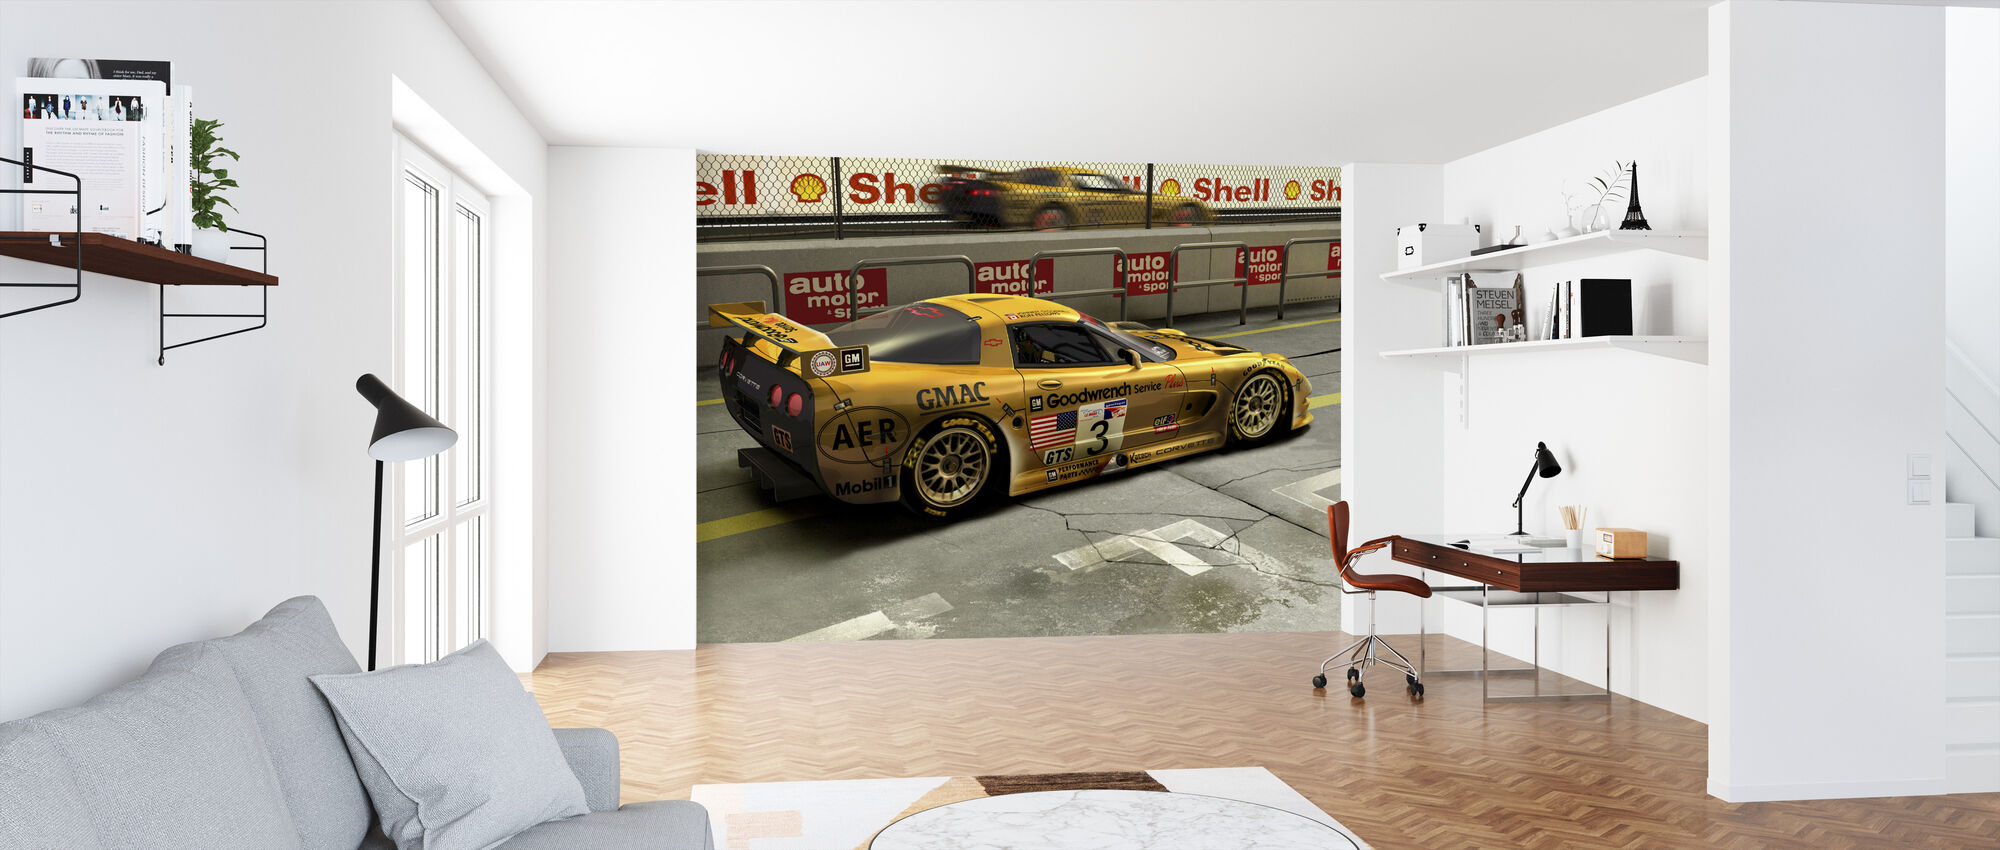 Car In Pit Lane - Wallpaper - Office